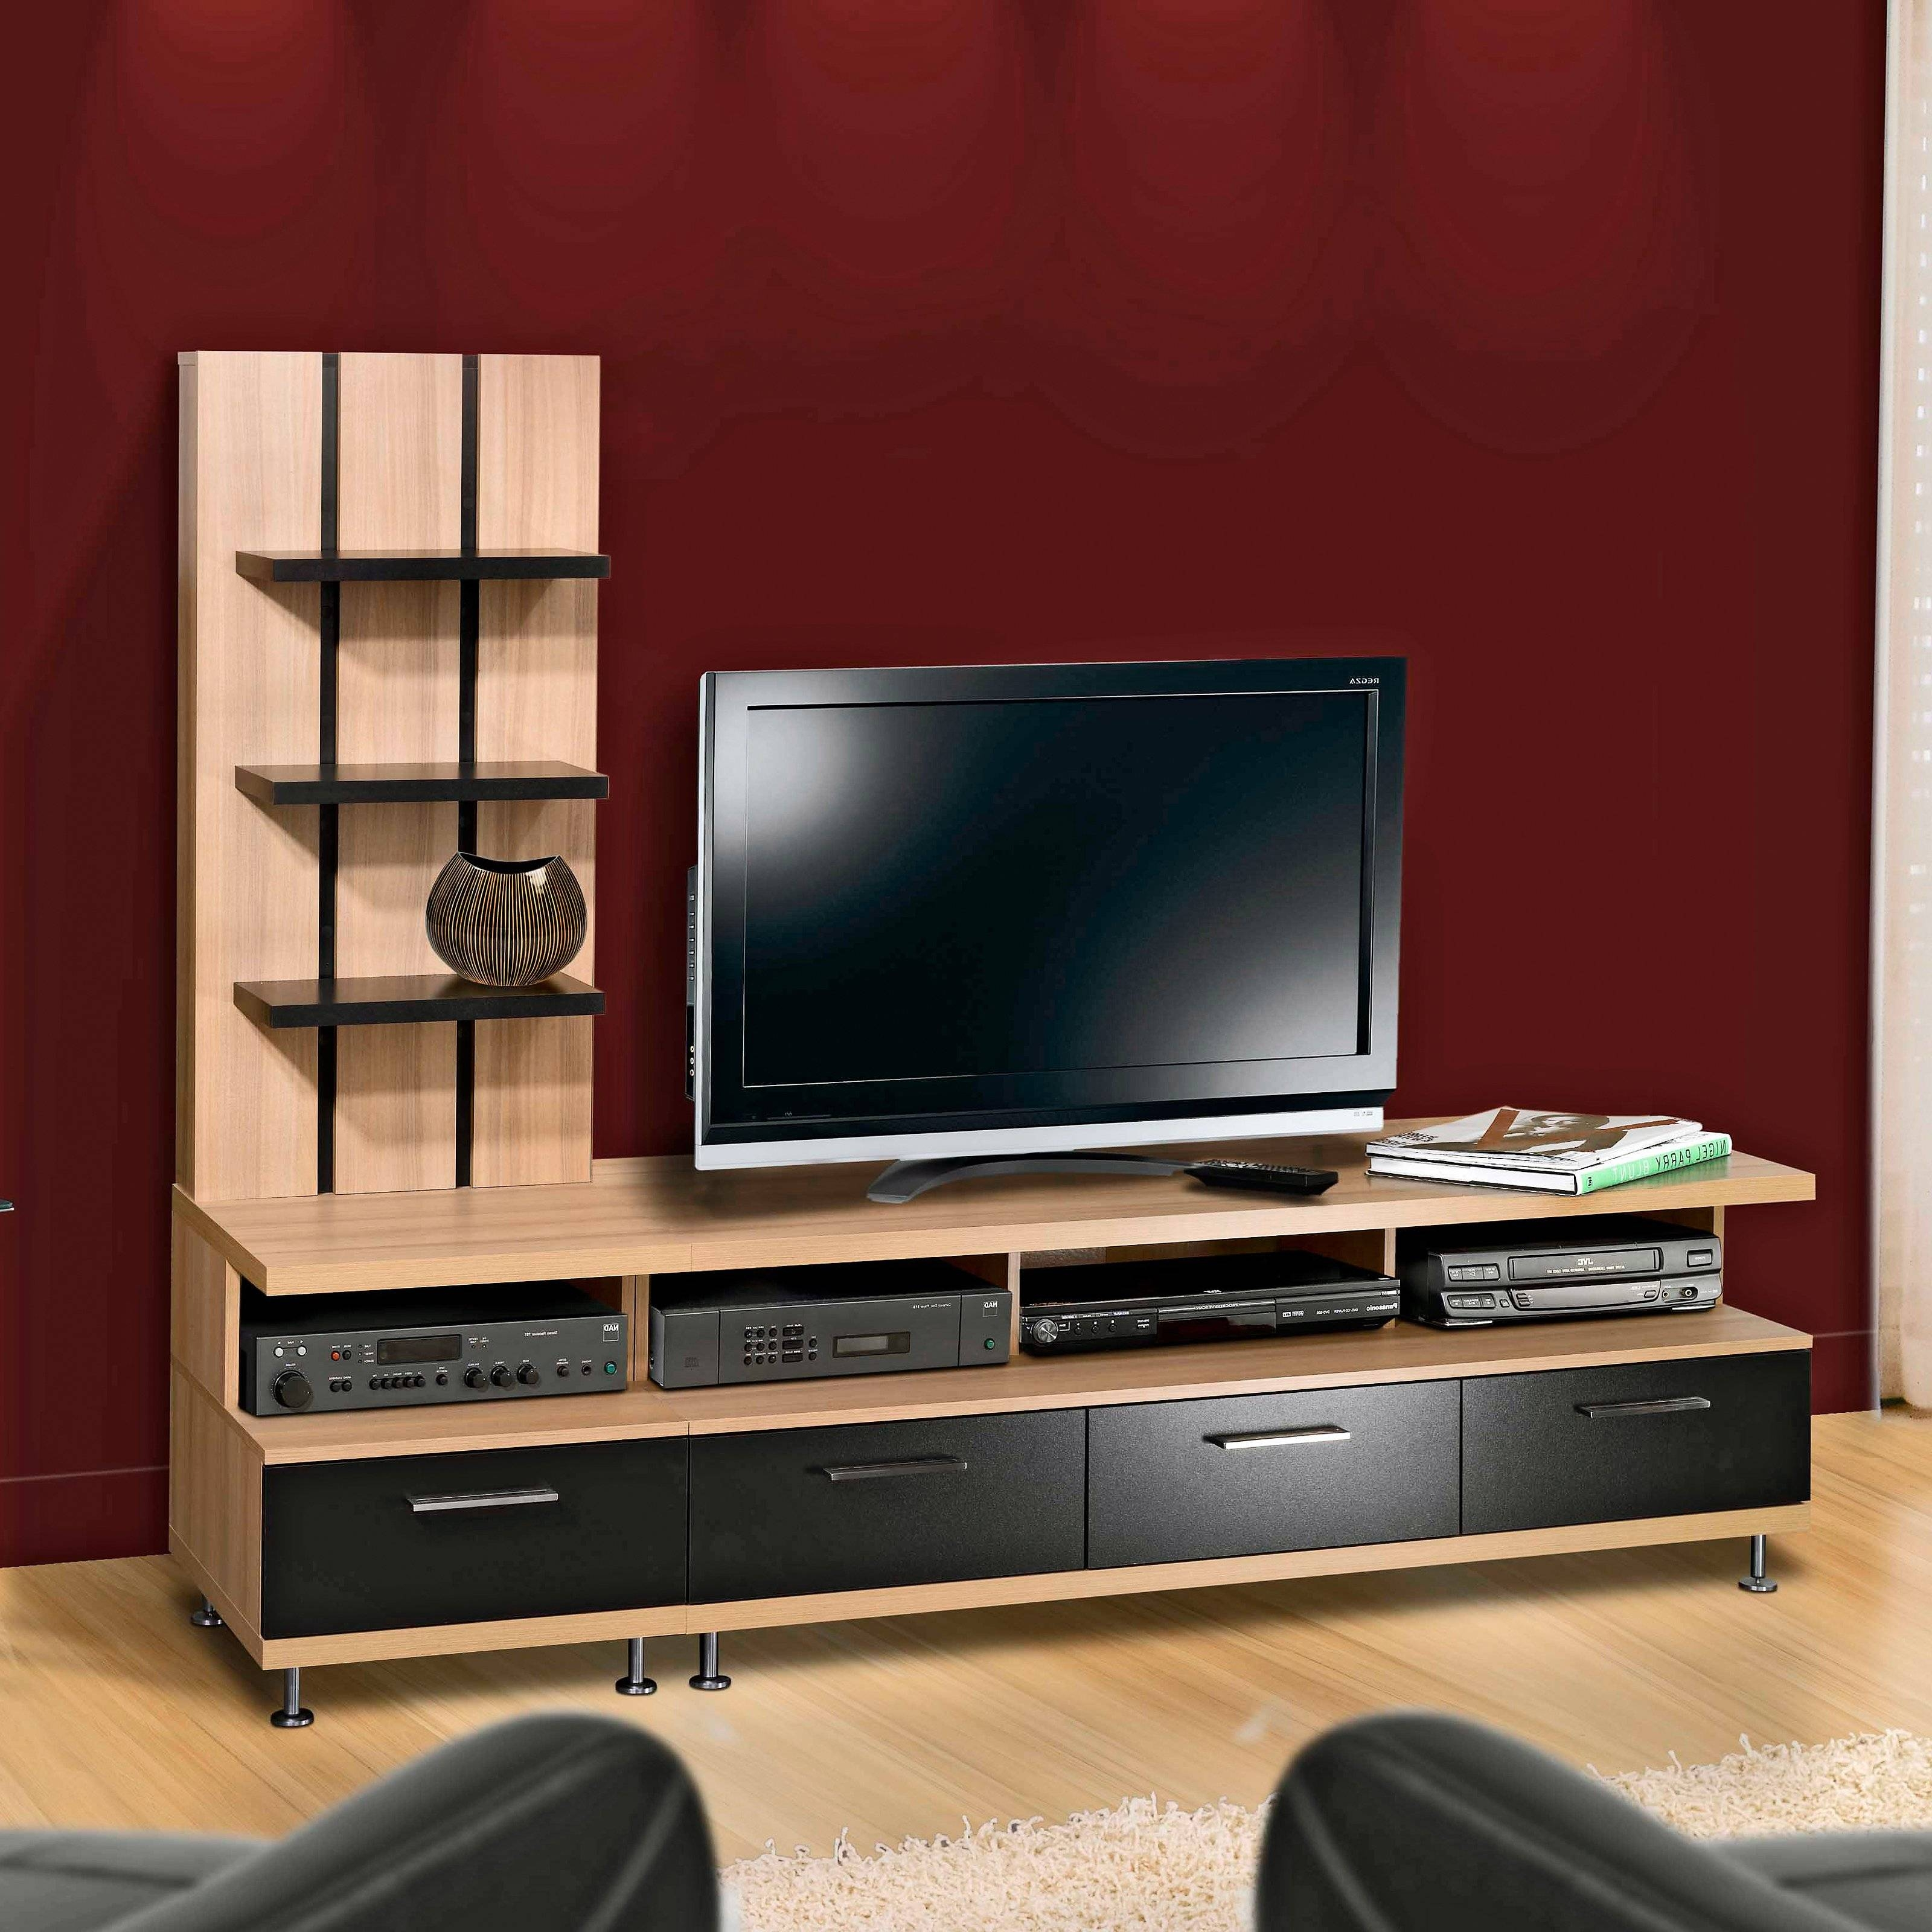 Furniture. The Modern Tv Stands For Flat Screens For More Secure within Contemporary Tv Cabinets for Flat Screens (Image 6 of 15)